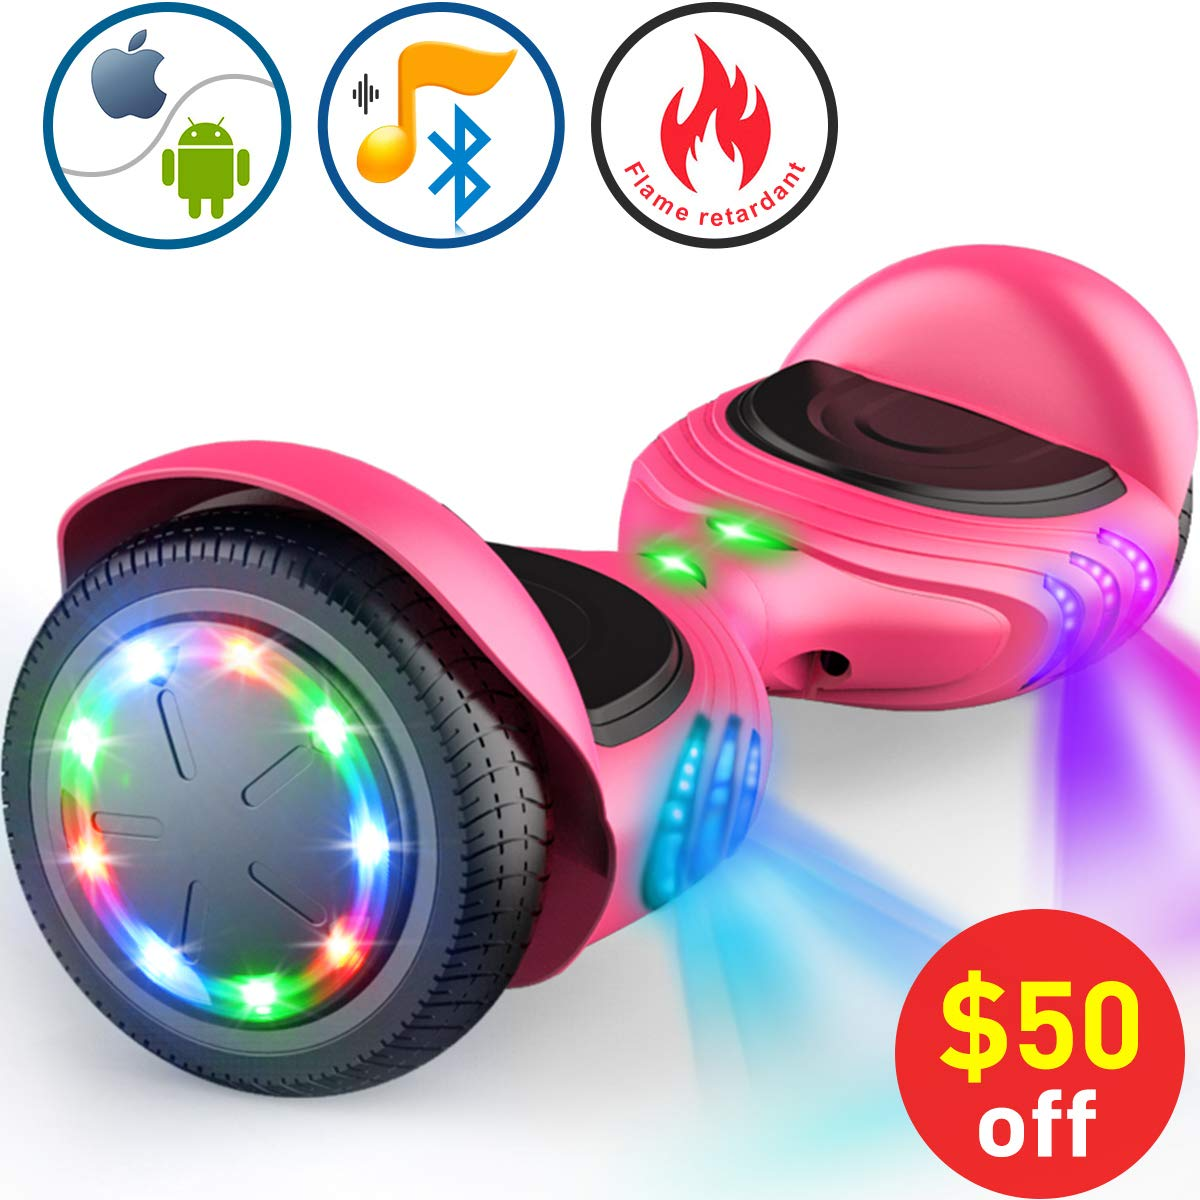 TOMOLOO Hoverboard with Bluetooth Speaker, UL2272 Certified Self Balancing Electric Scooter, 6.5